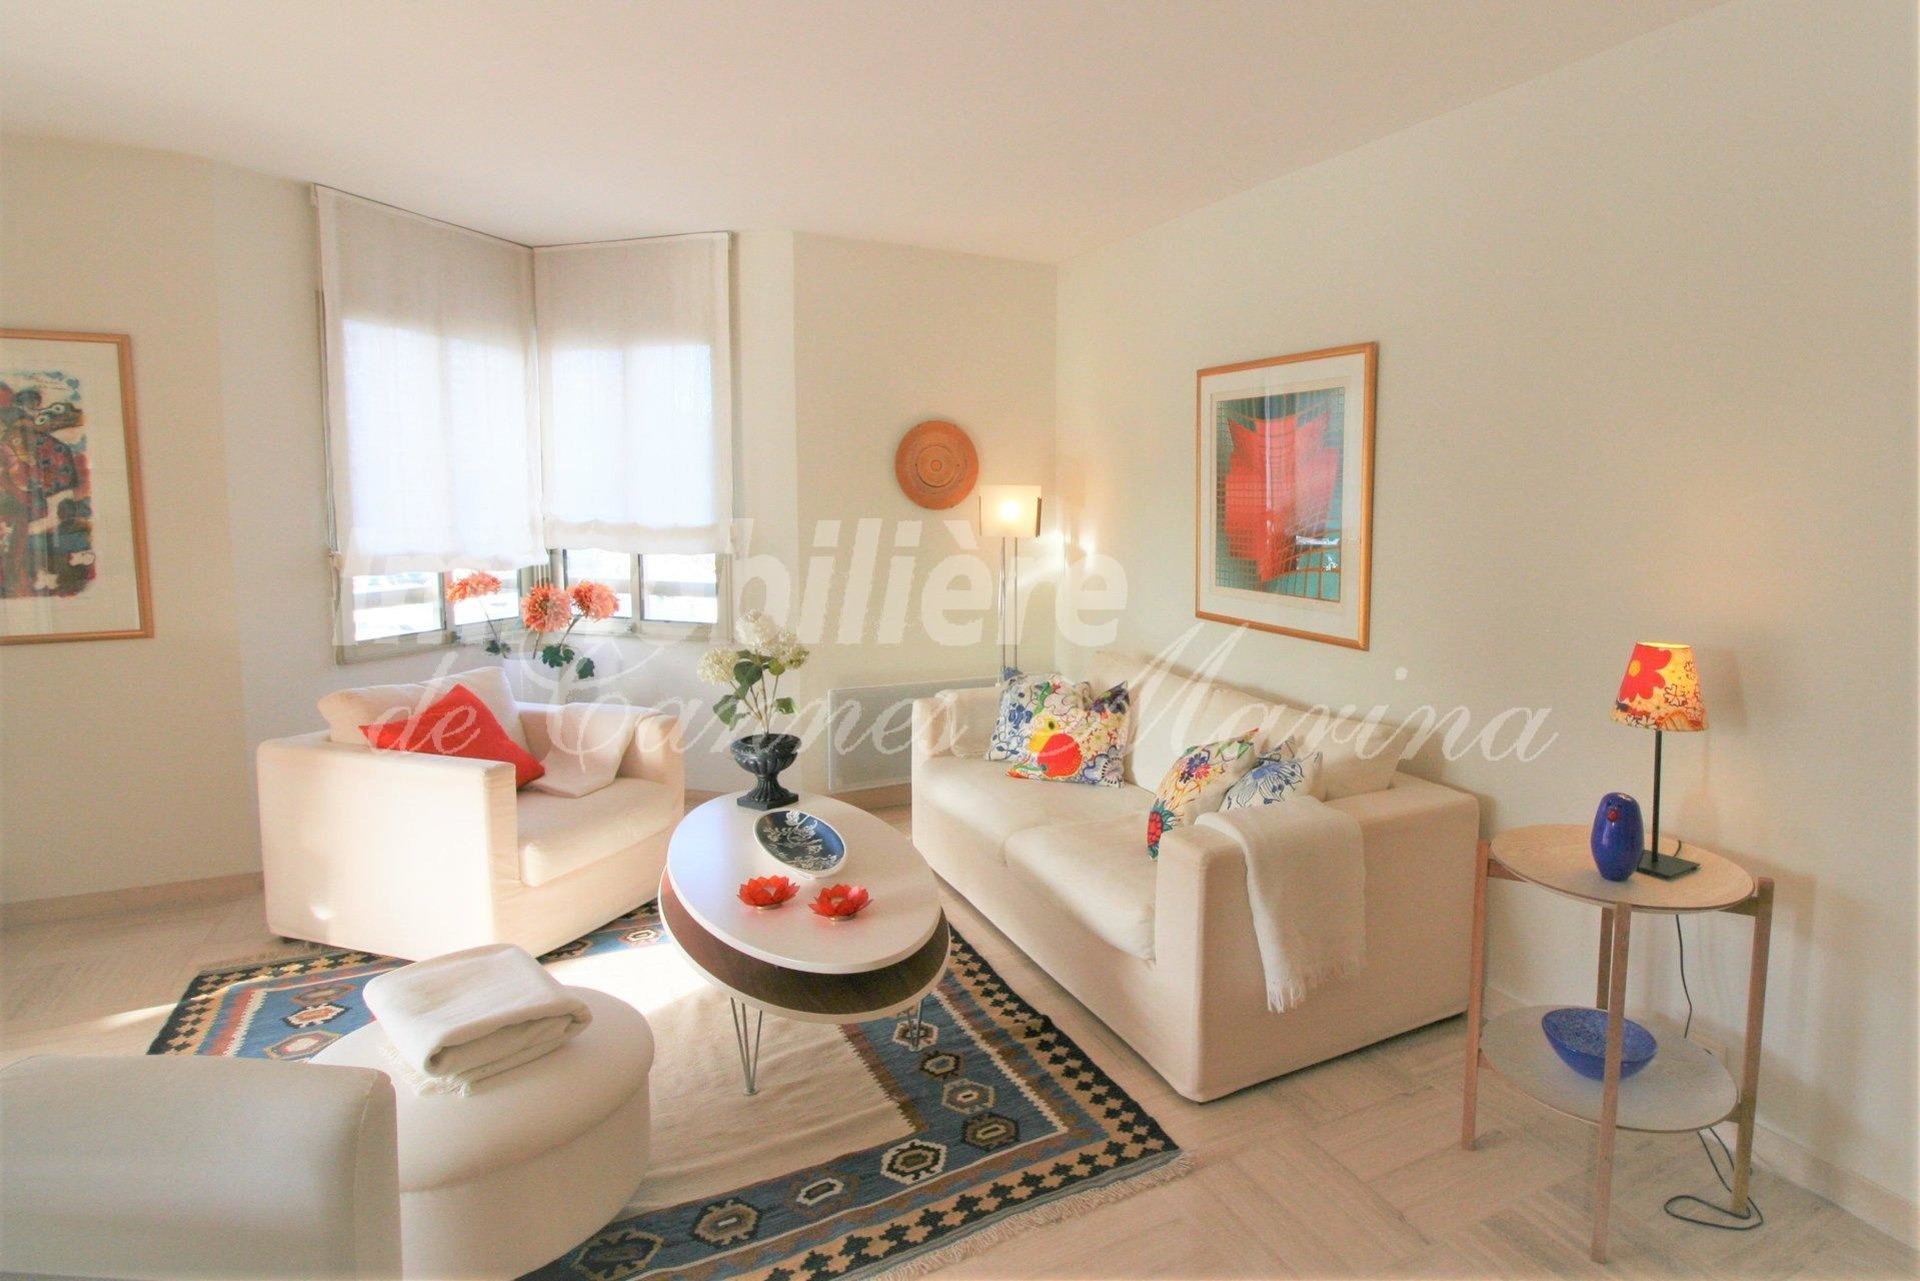 LARGE 1 bedroom apartment - South/West sun exposure